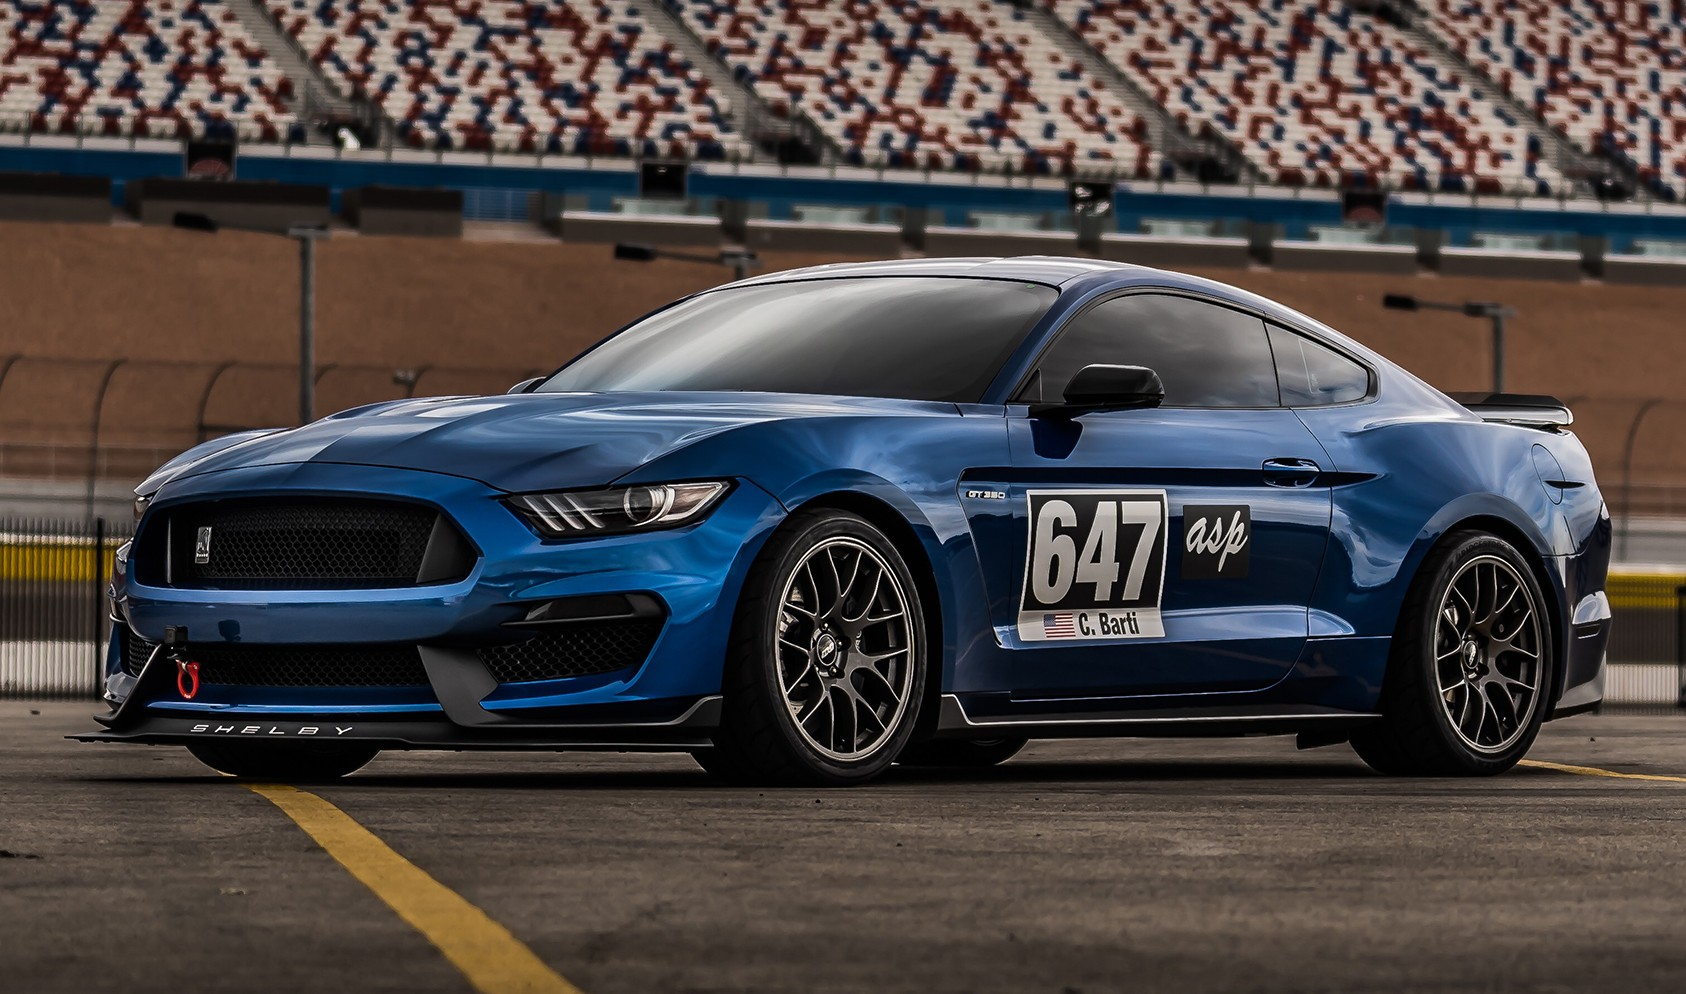 """S550 GT350 Square Fitment<br />19x11"""" ET52 Anthracite EC-7 wheels<br />305/30-19 Michelin Pilot Sport Cup 2 tires<br />25mm front spacers<br />Photo by: Mark Bastos"""